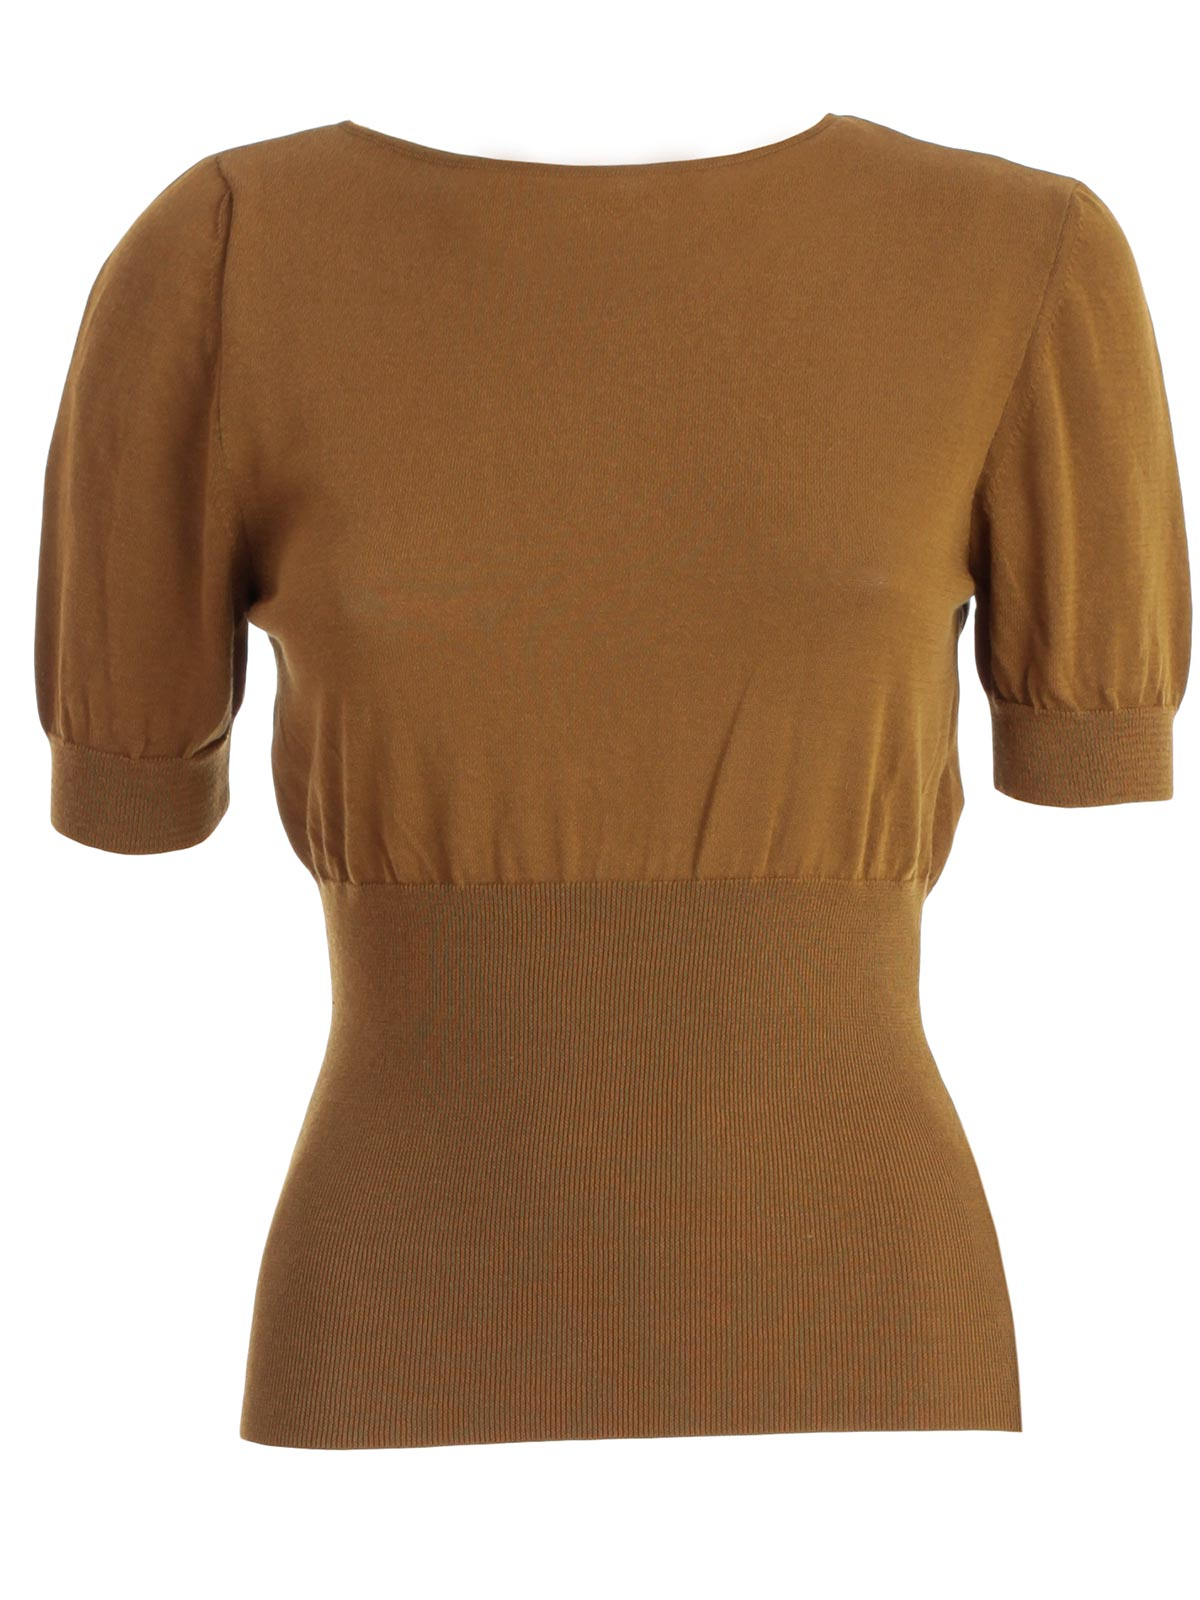 Jacquemus Knits JACQUEMUS FITTED WAIST KNIT TOP